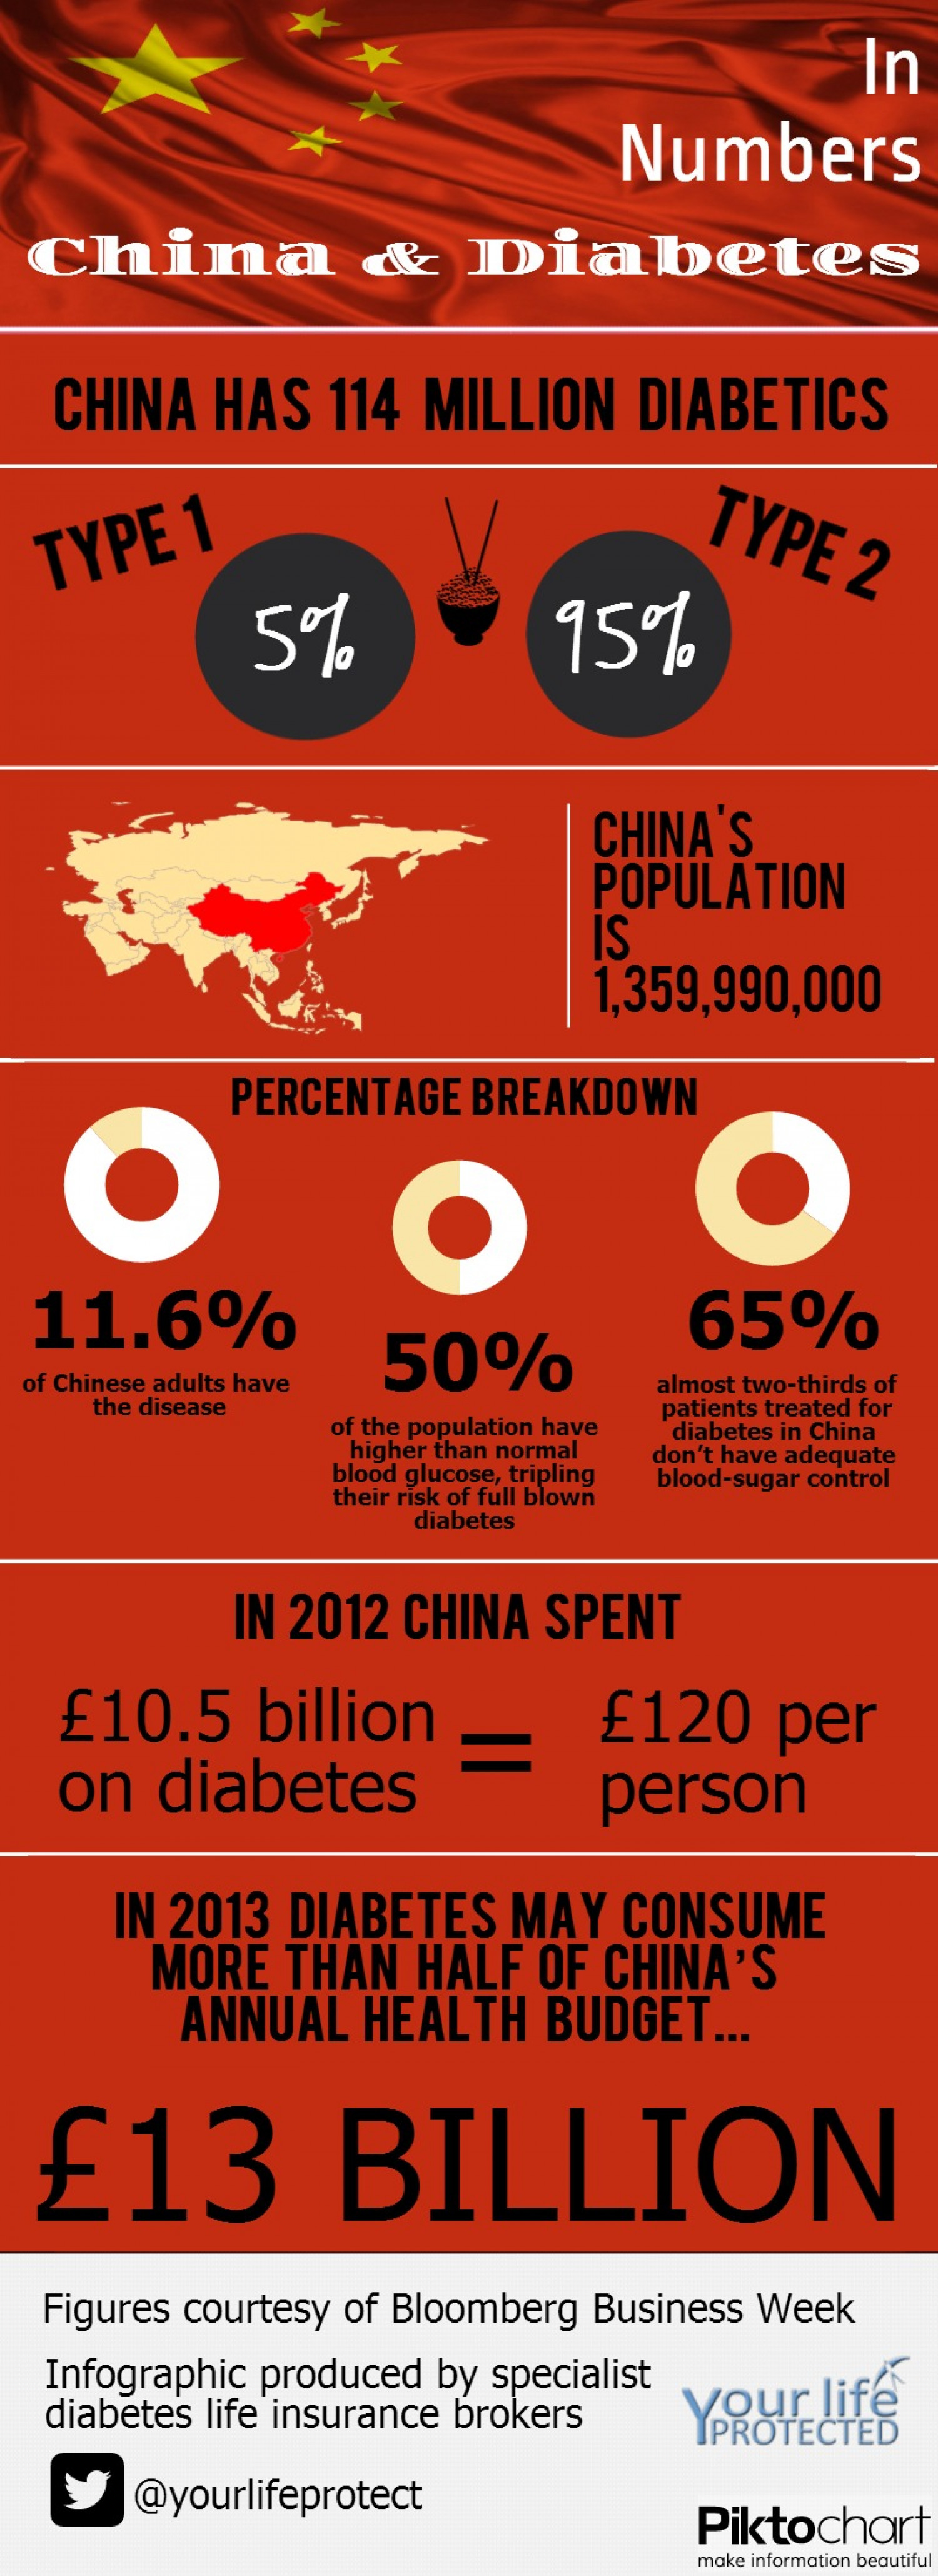 China and Diabetes in Numbers Infographic